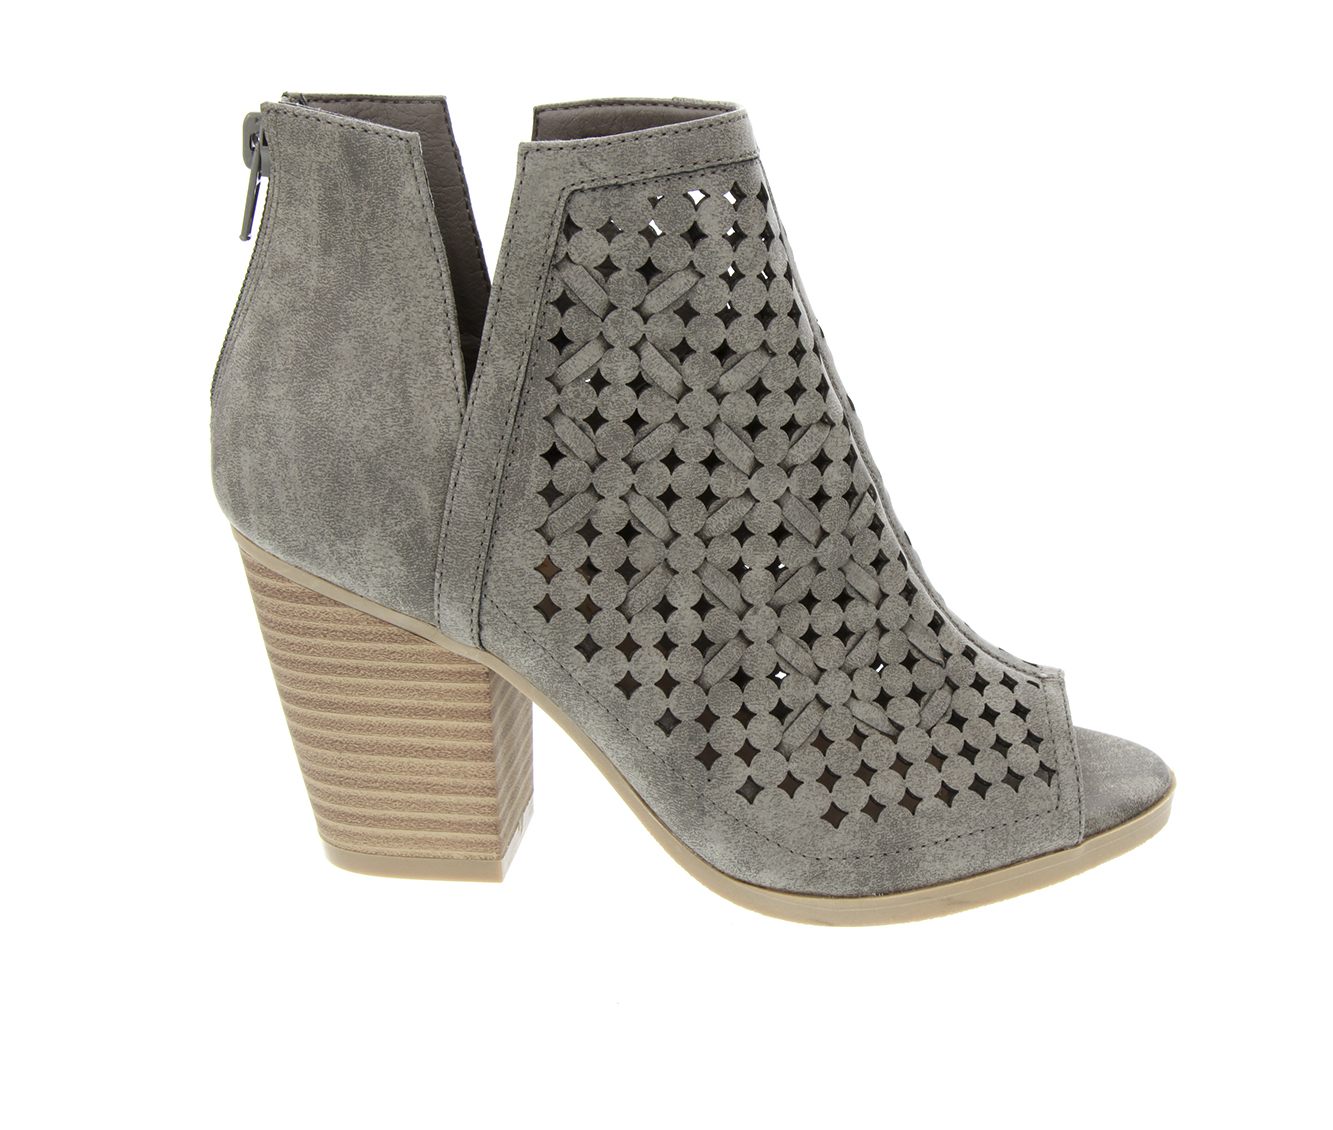 Sugar Vael 3 Women's Boot (Gray Faux Leather)